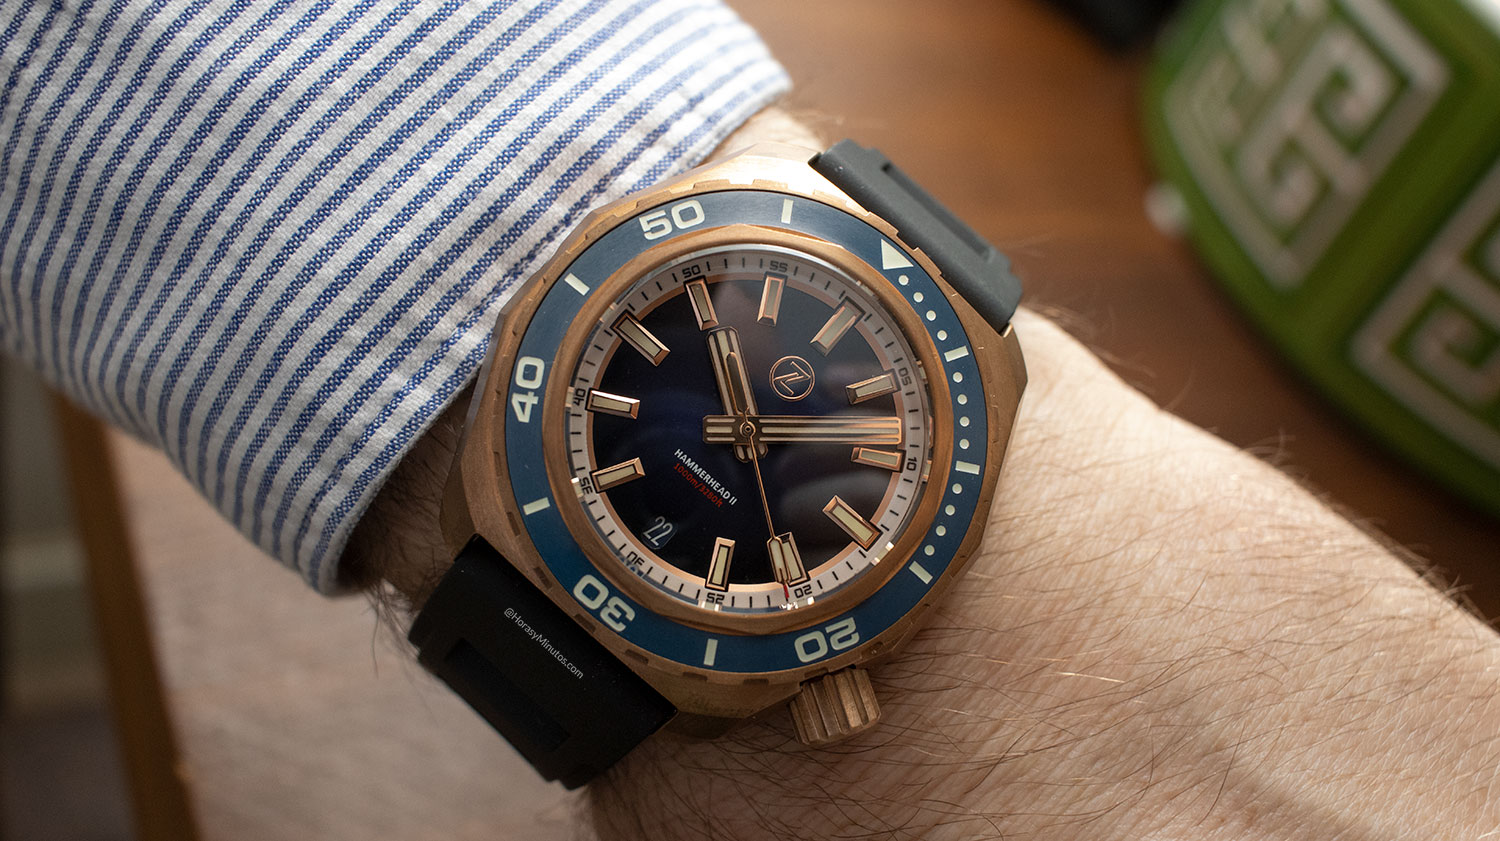 Así queda el Super-LumiNova en el Zelos Watches Hammerhead 1000 M Bronze Midnight Blue